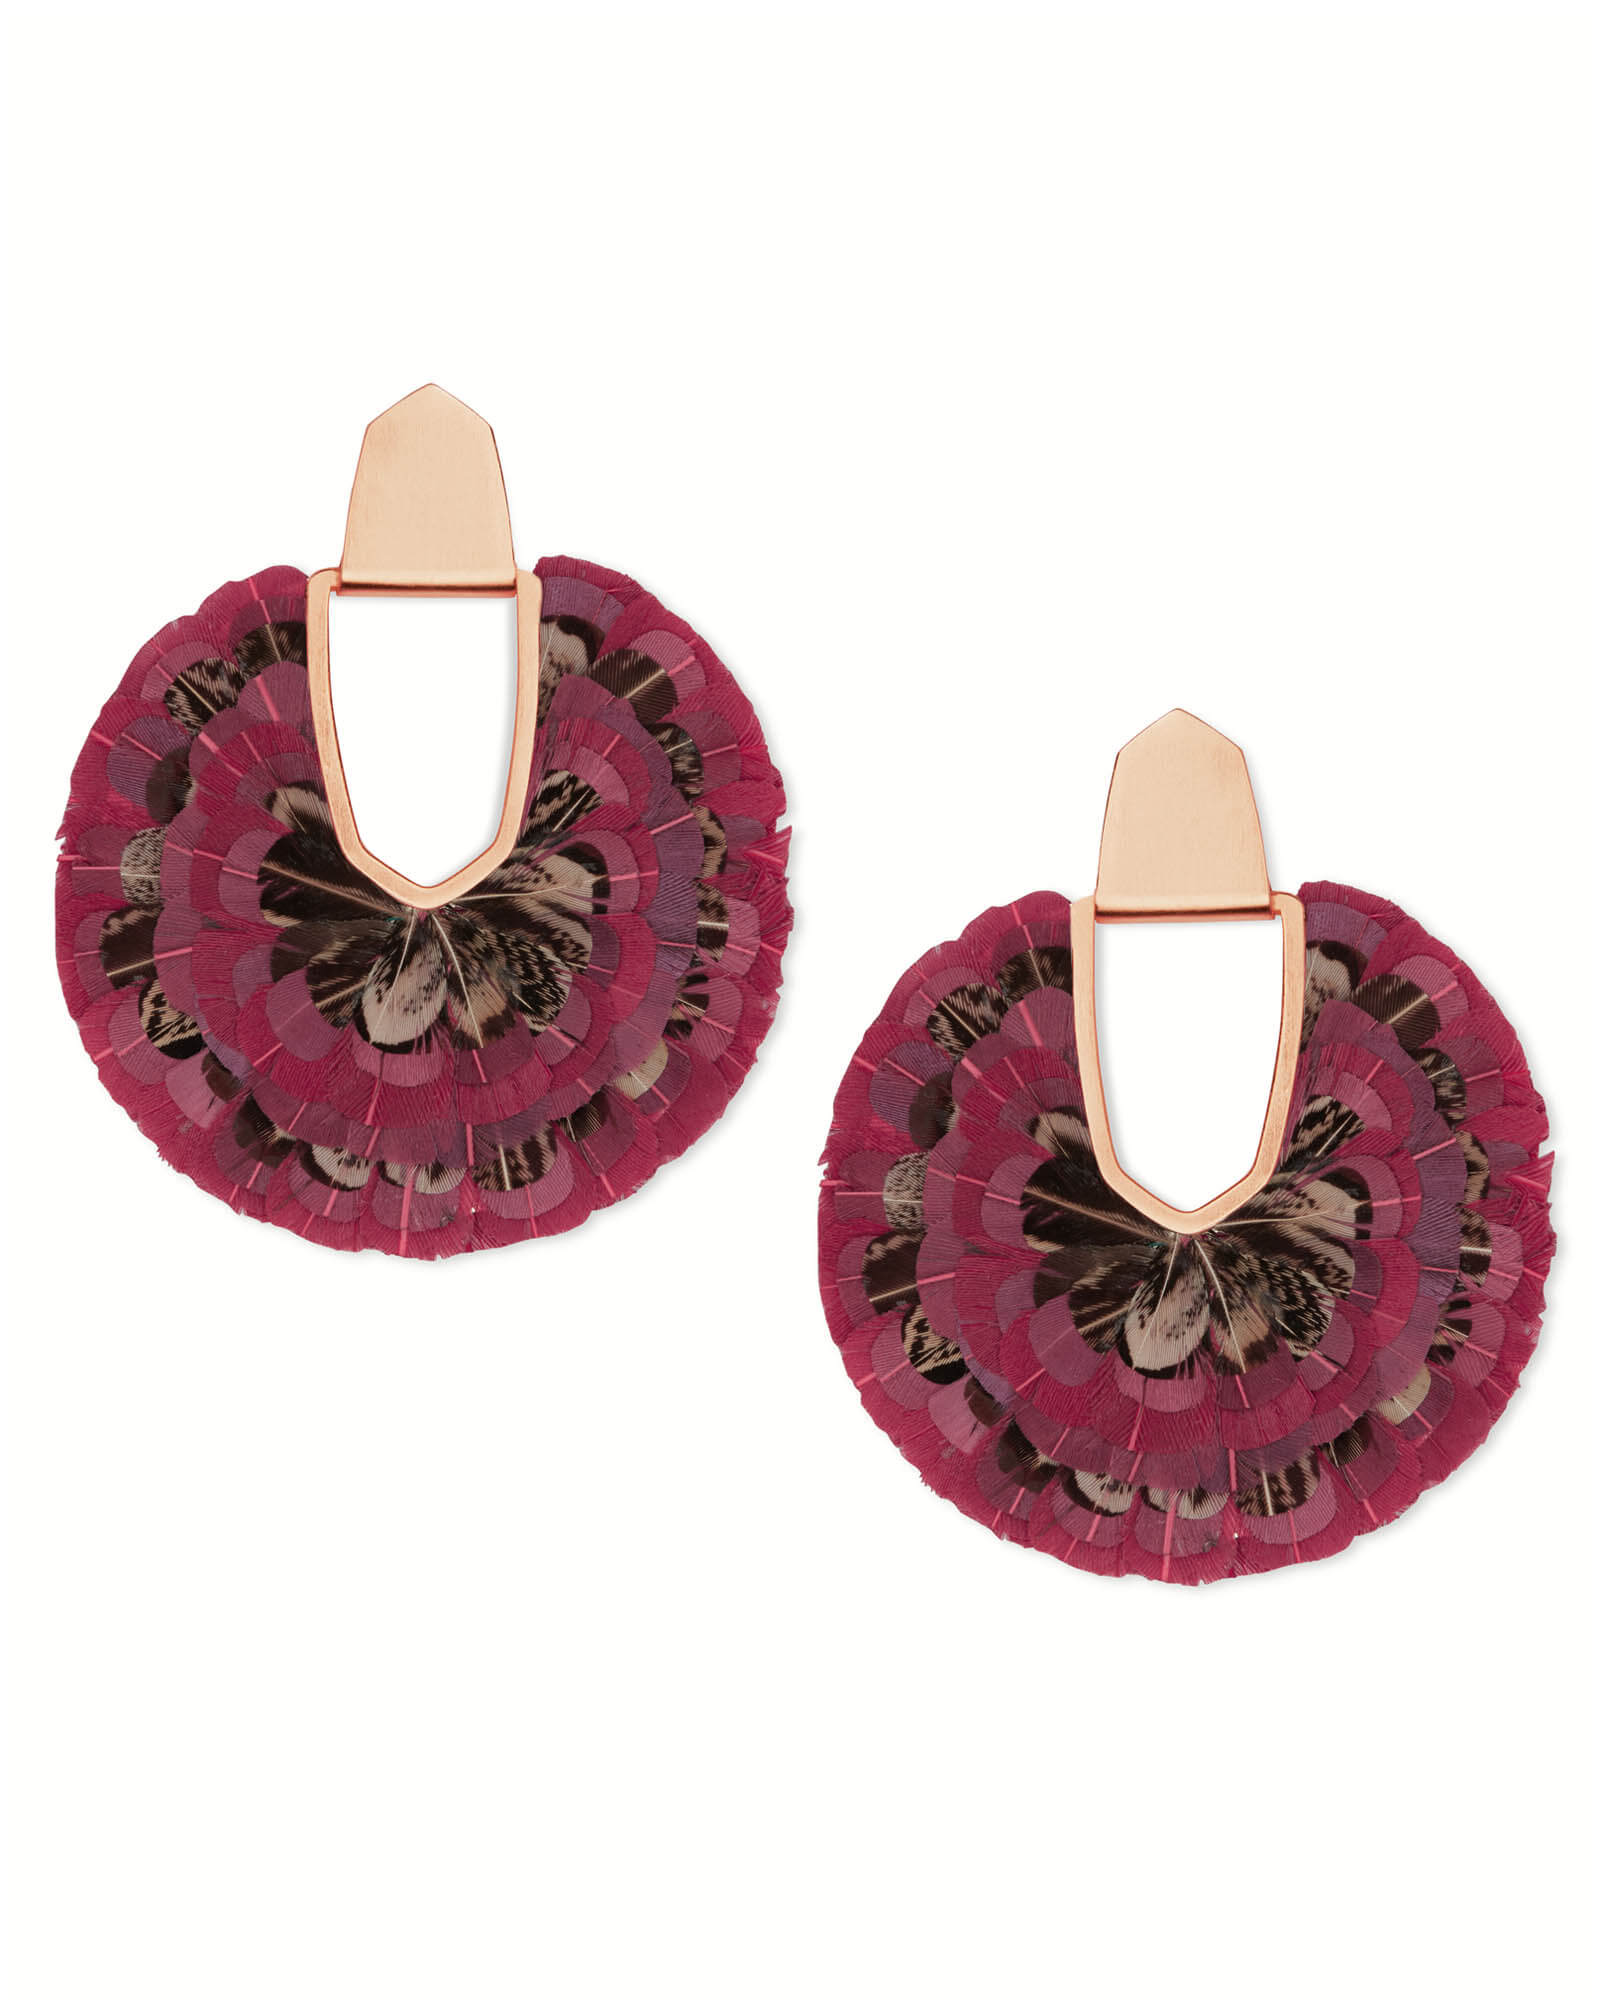 Diane Rose Gold Statement Earrings in Maroon Feathers